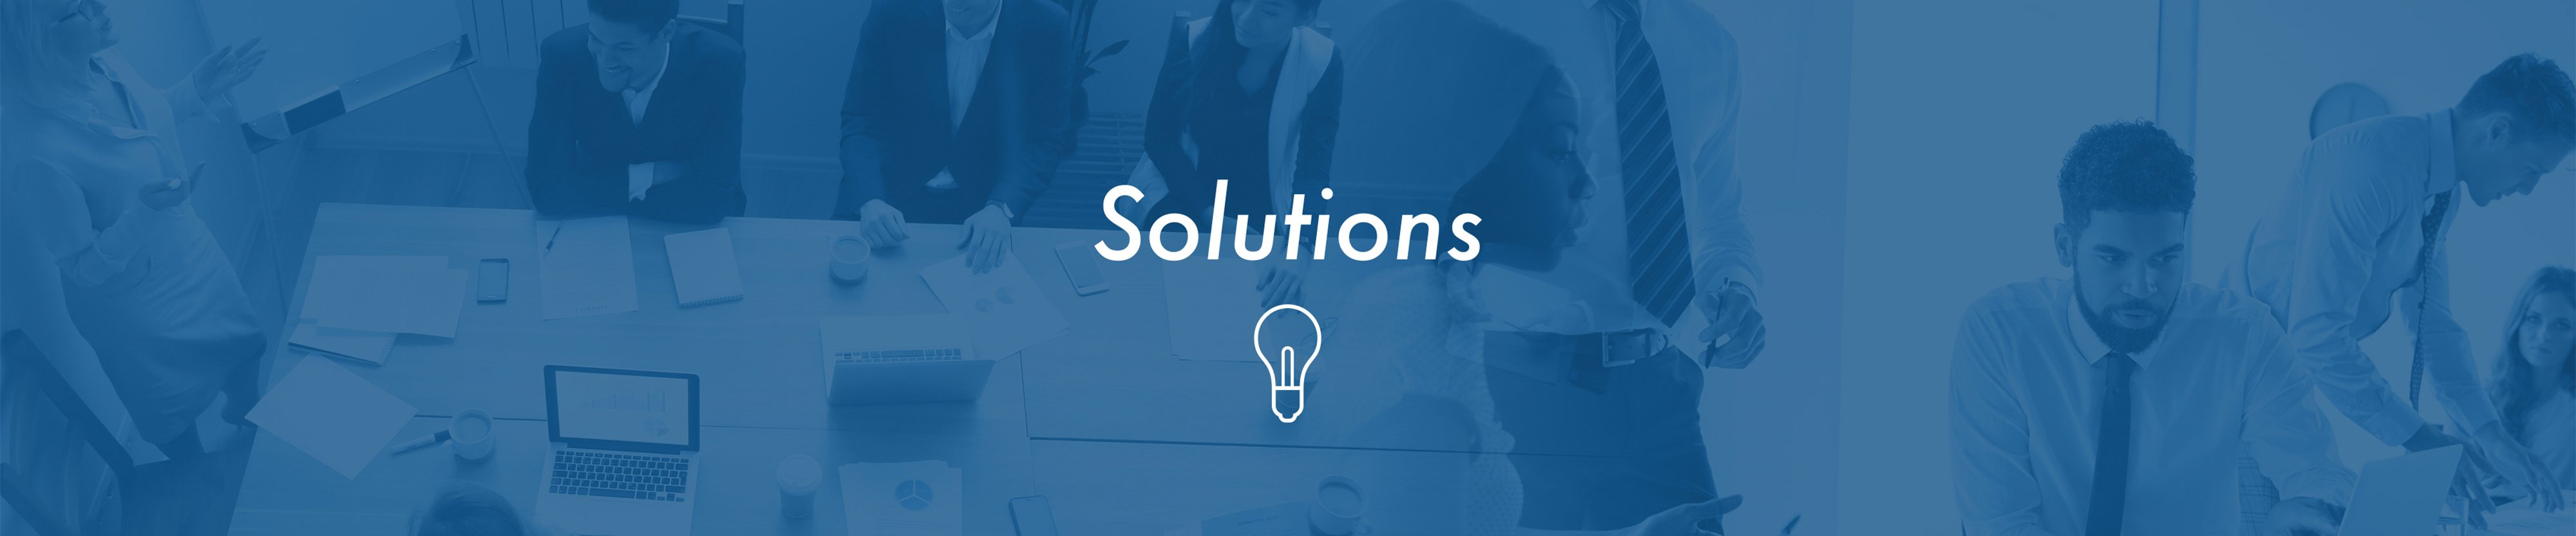 Advanced Analytics Group Solutions Banner